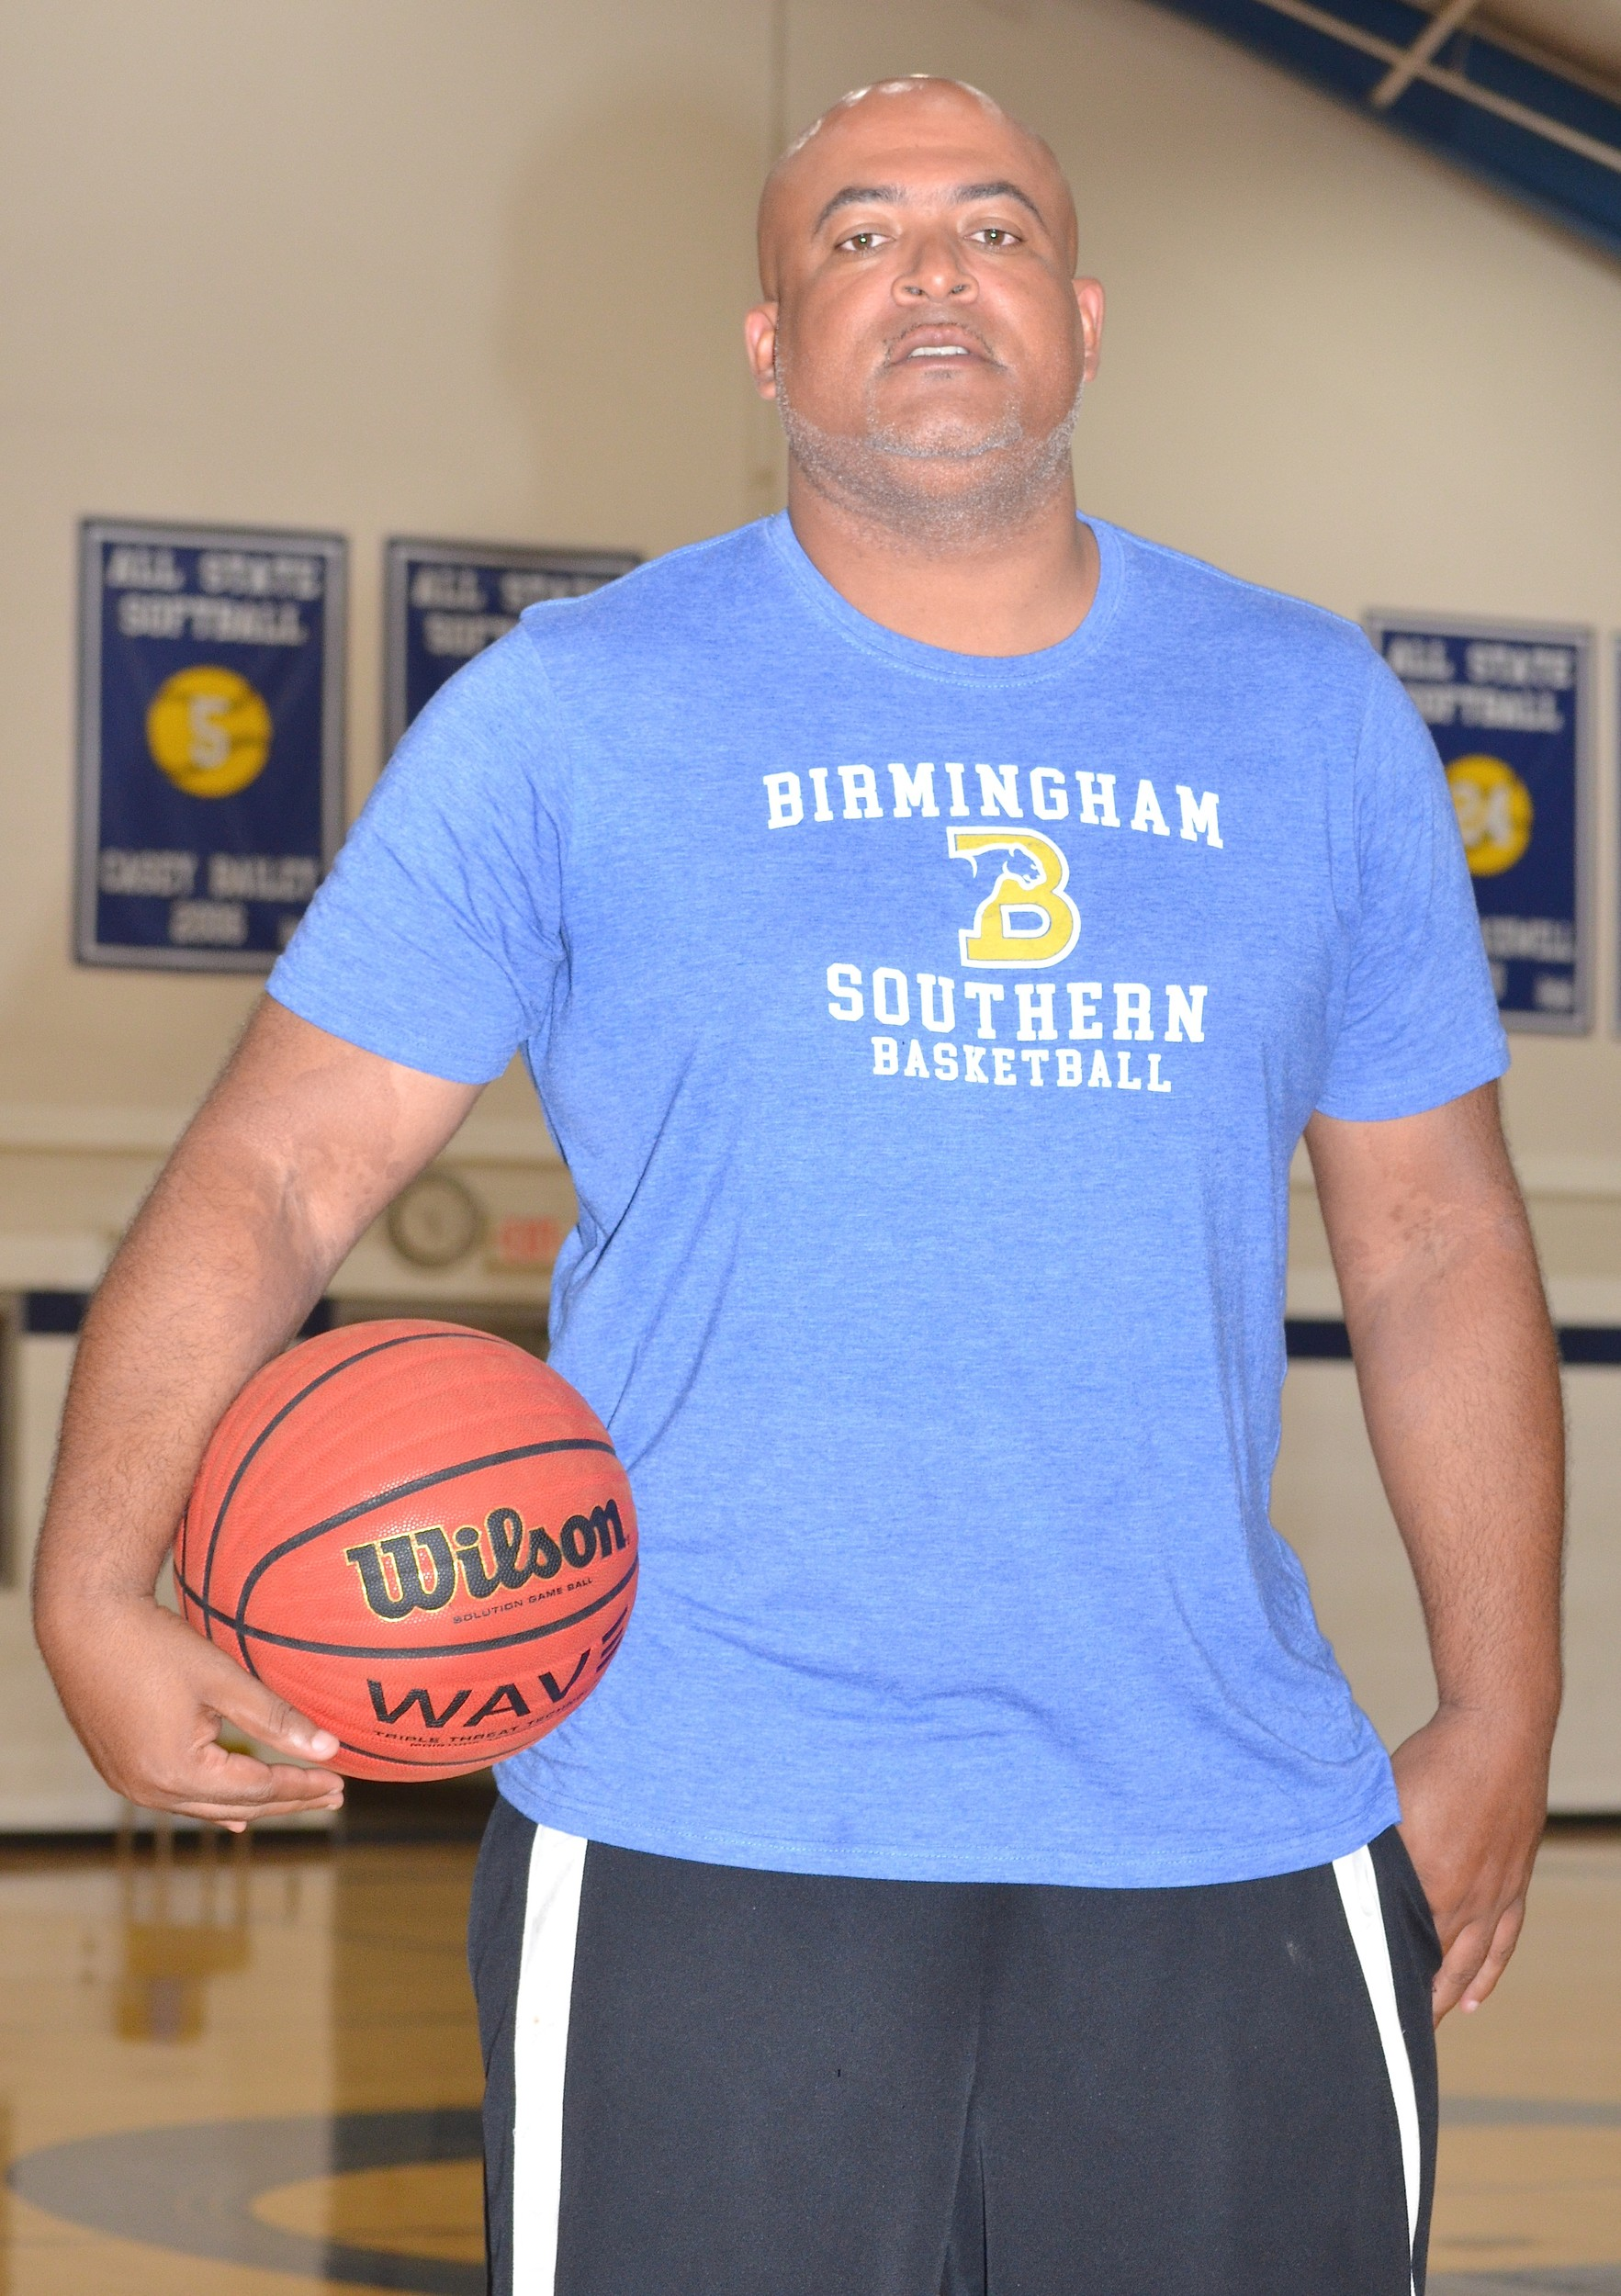 Derek Roberts is the new Oakman High School boys basketball coach. He replaces Chris Berry who was at the school for three years. Roberts was an assistant at Hillcrest-Evergreen for the last two years.